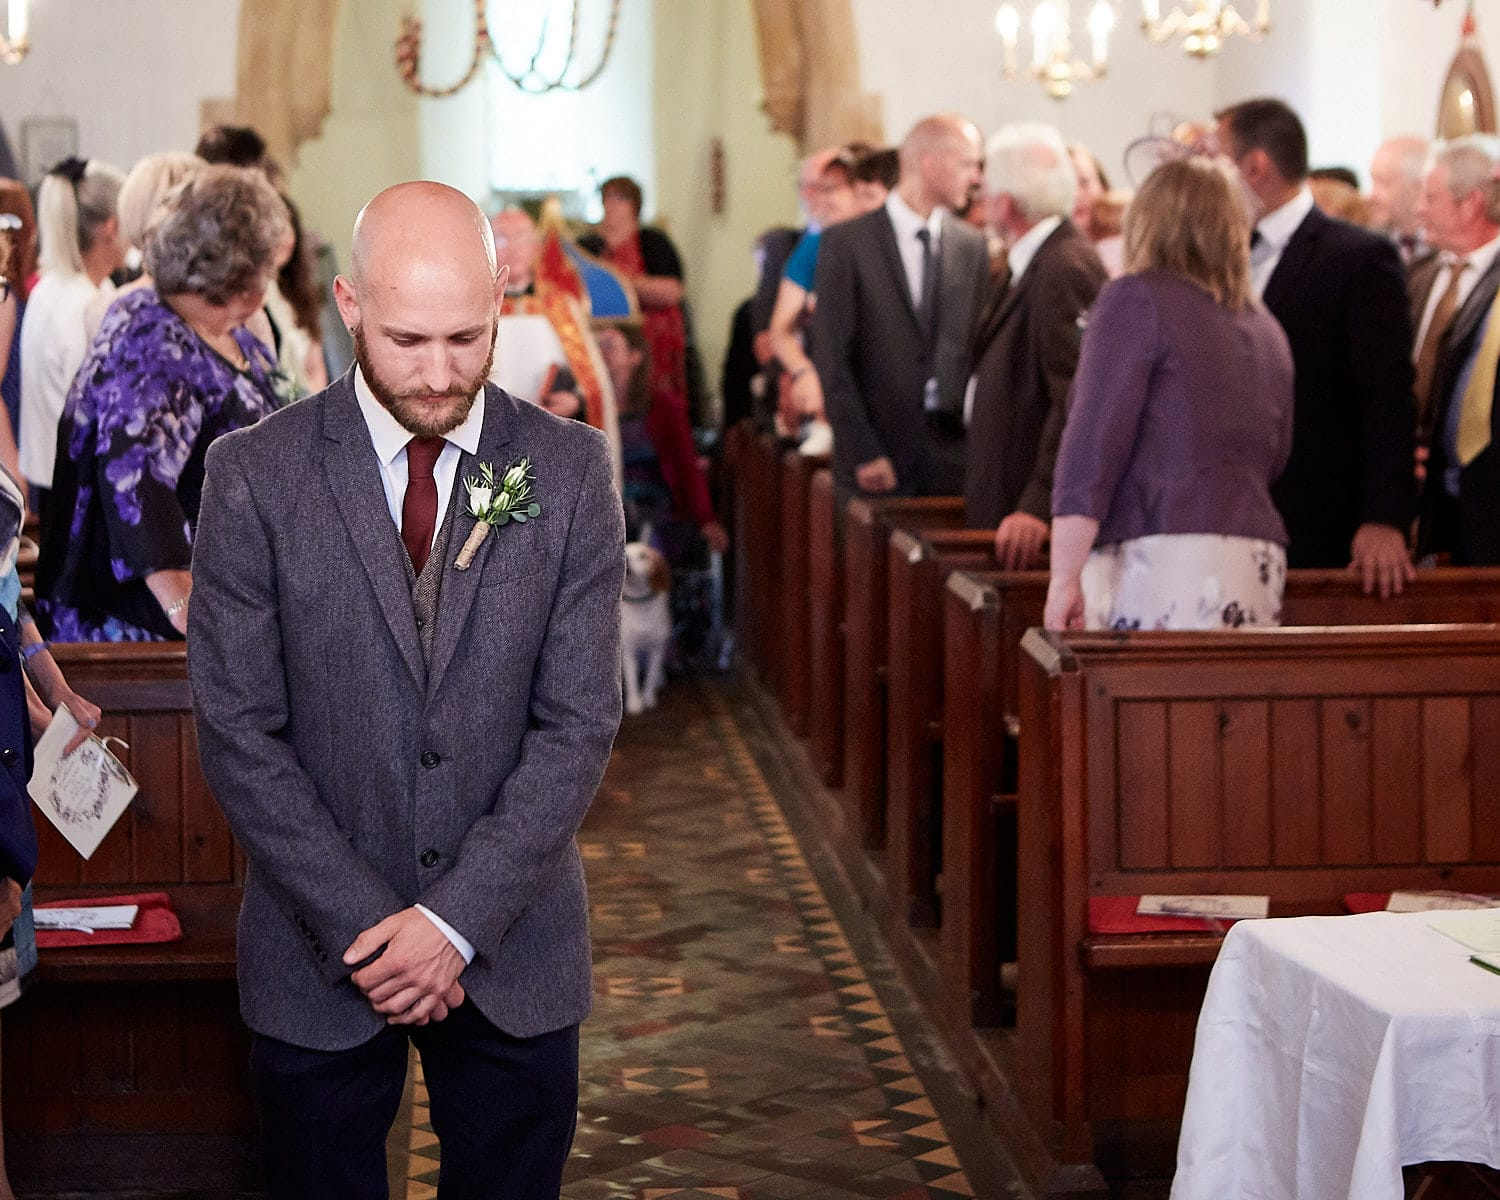 A nervous groom waits at the front of the church